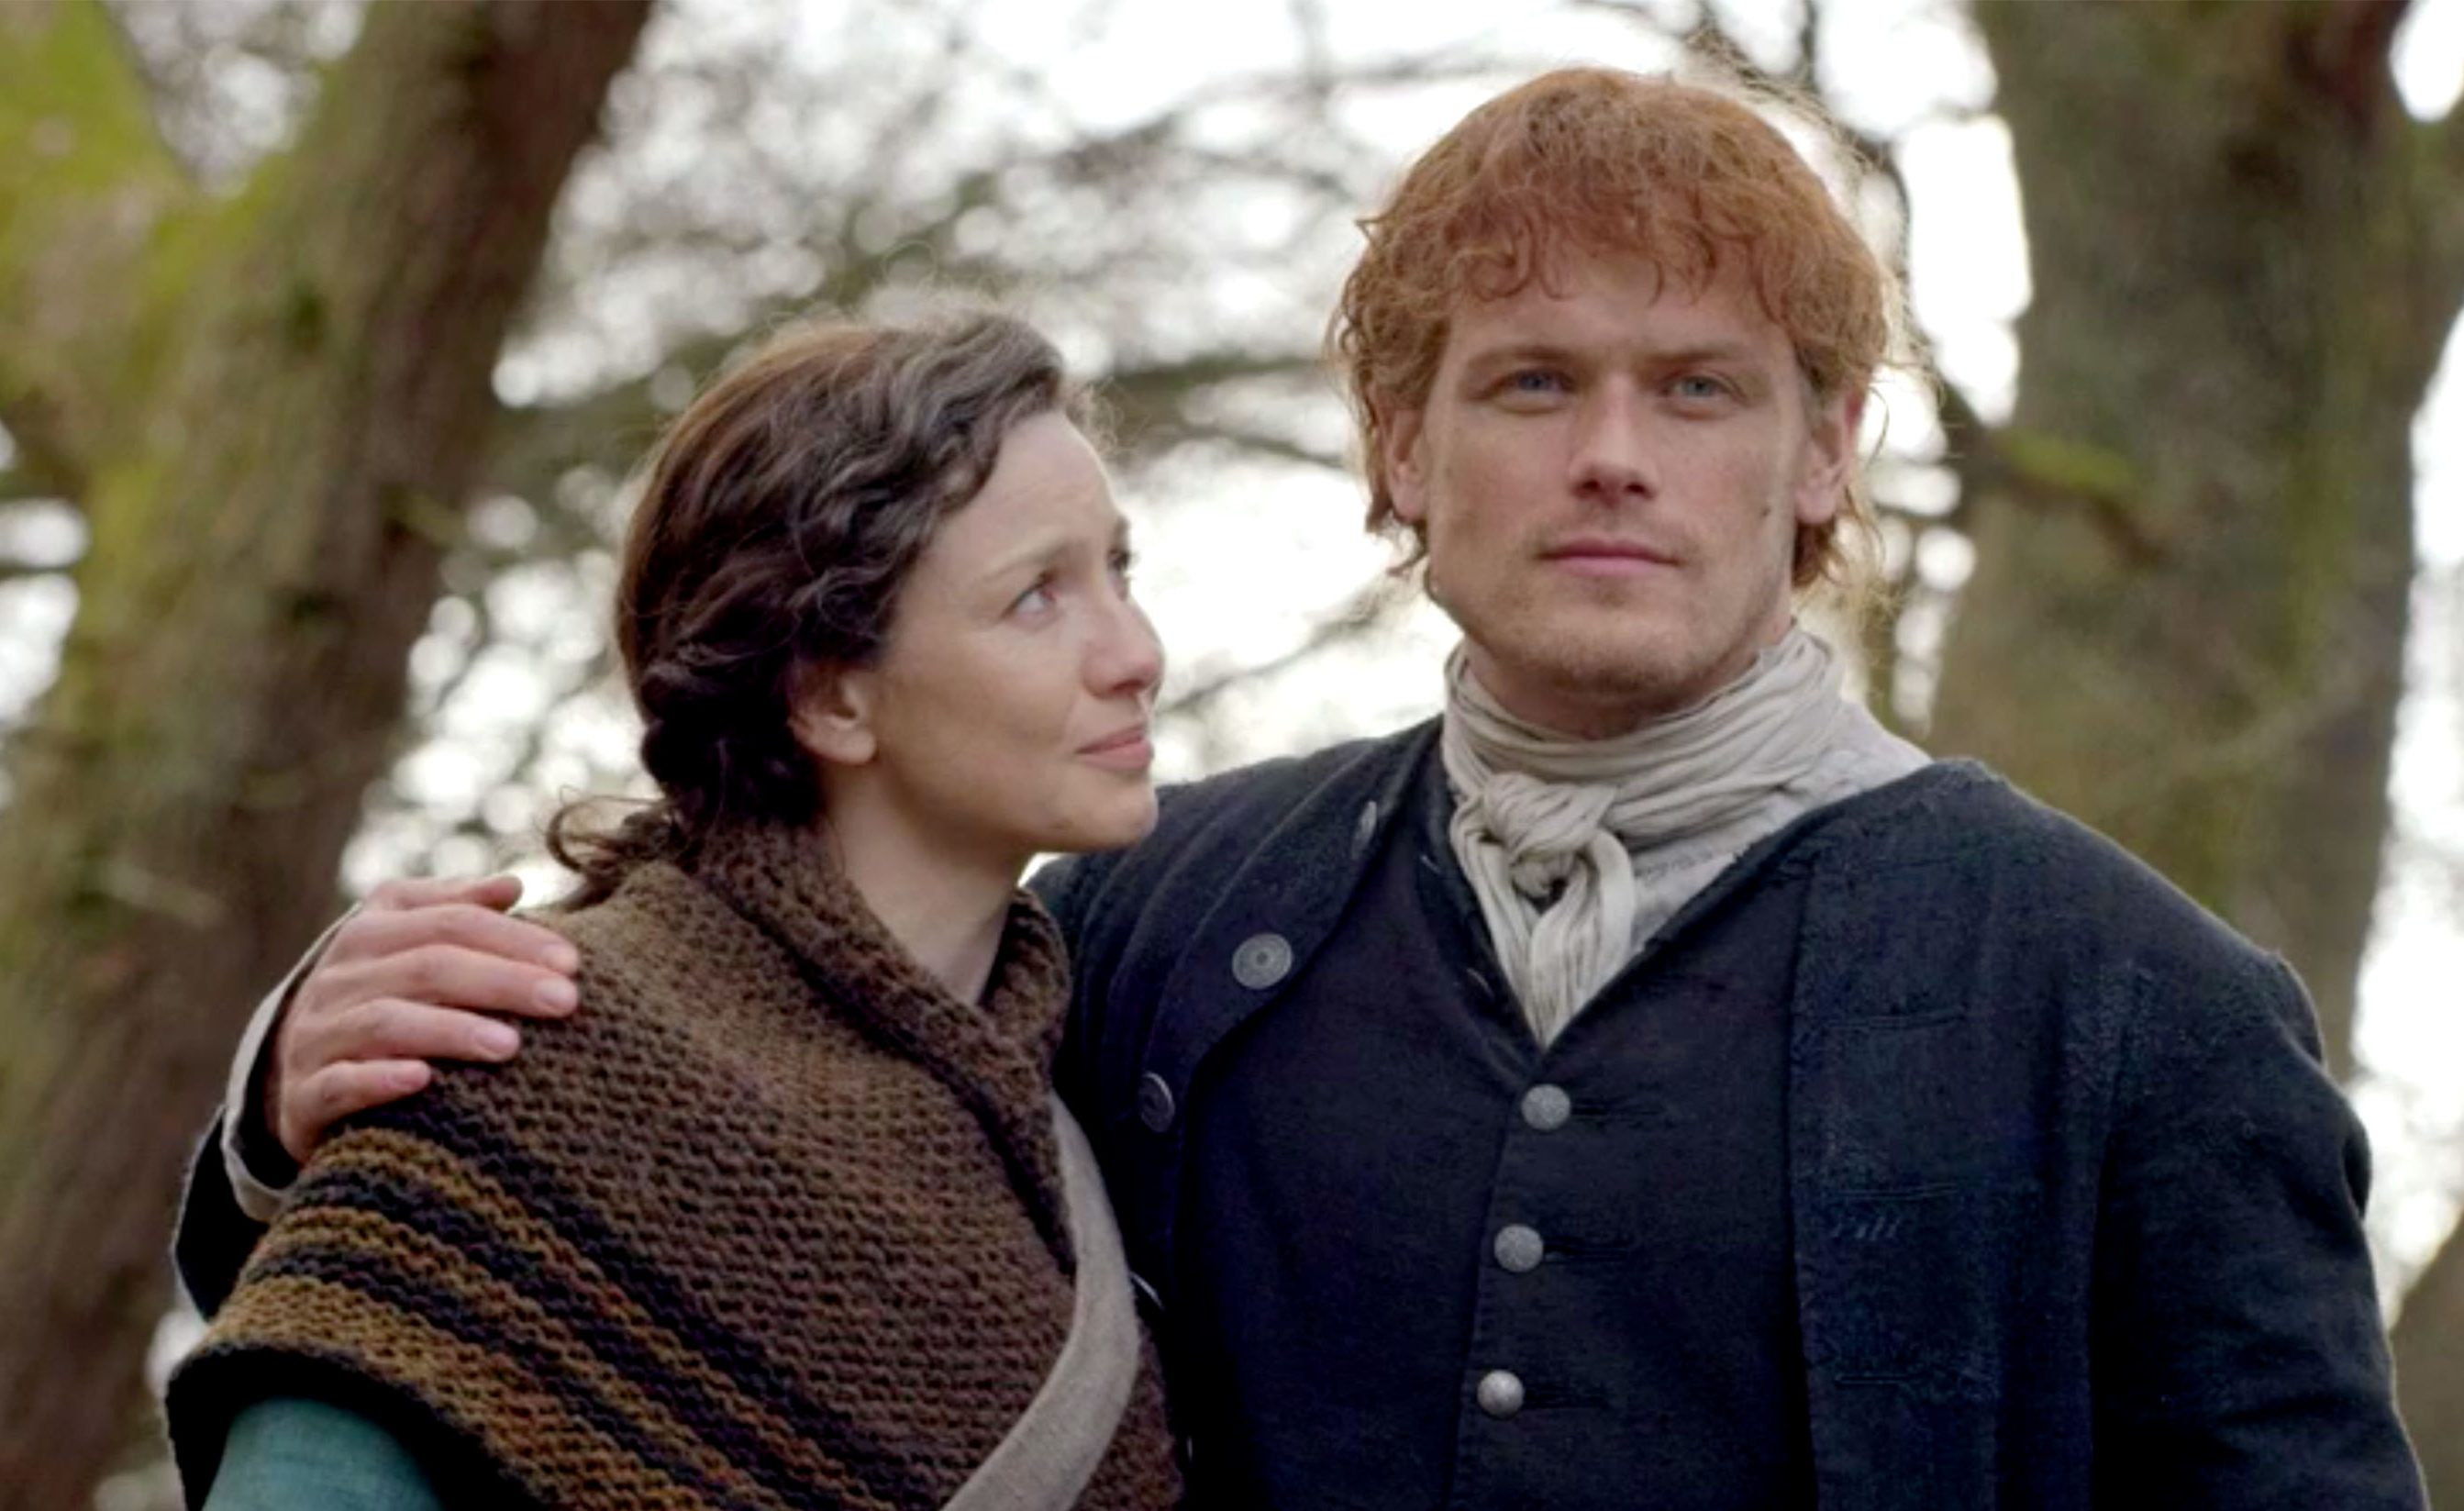 Outlander Cast Eps On Season 4 With The Brave New World Of America Comes A Tough Aunt Paleyfest Ny Deadline